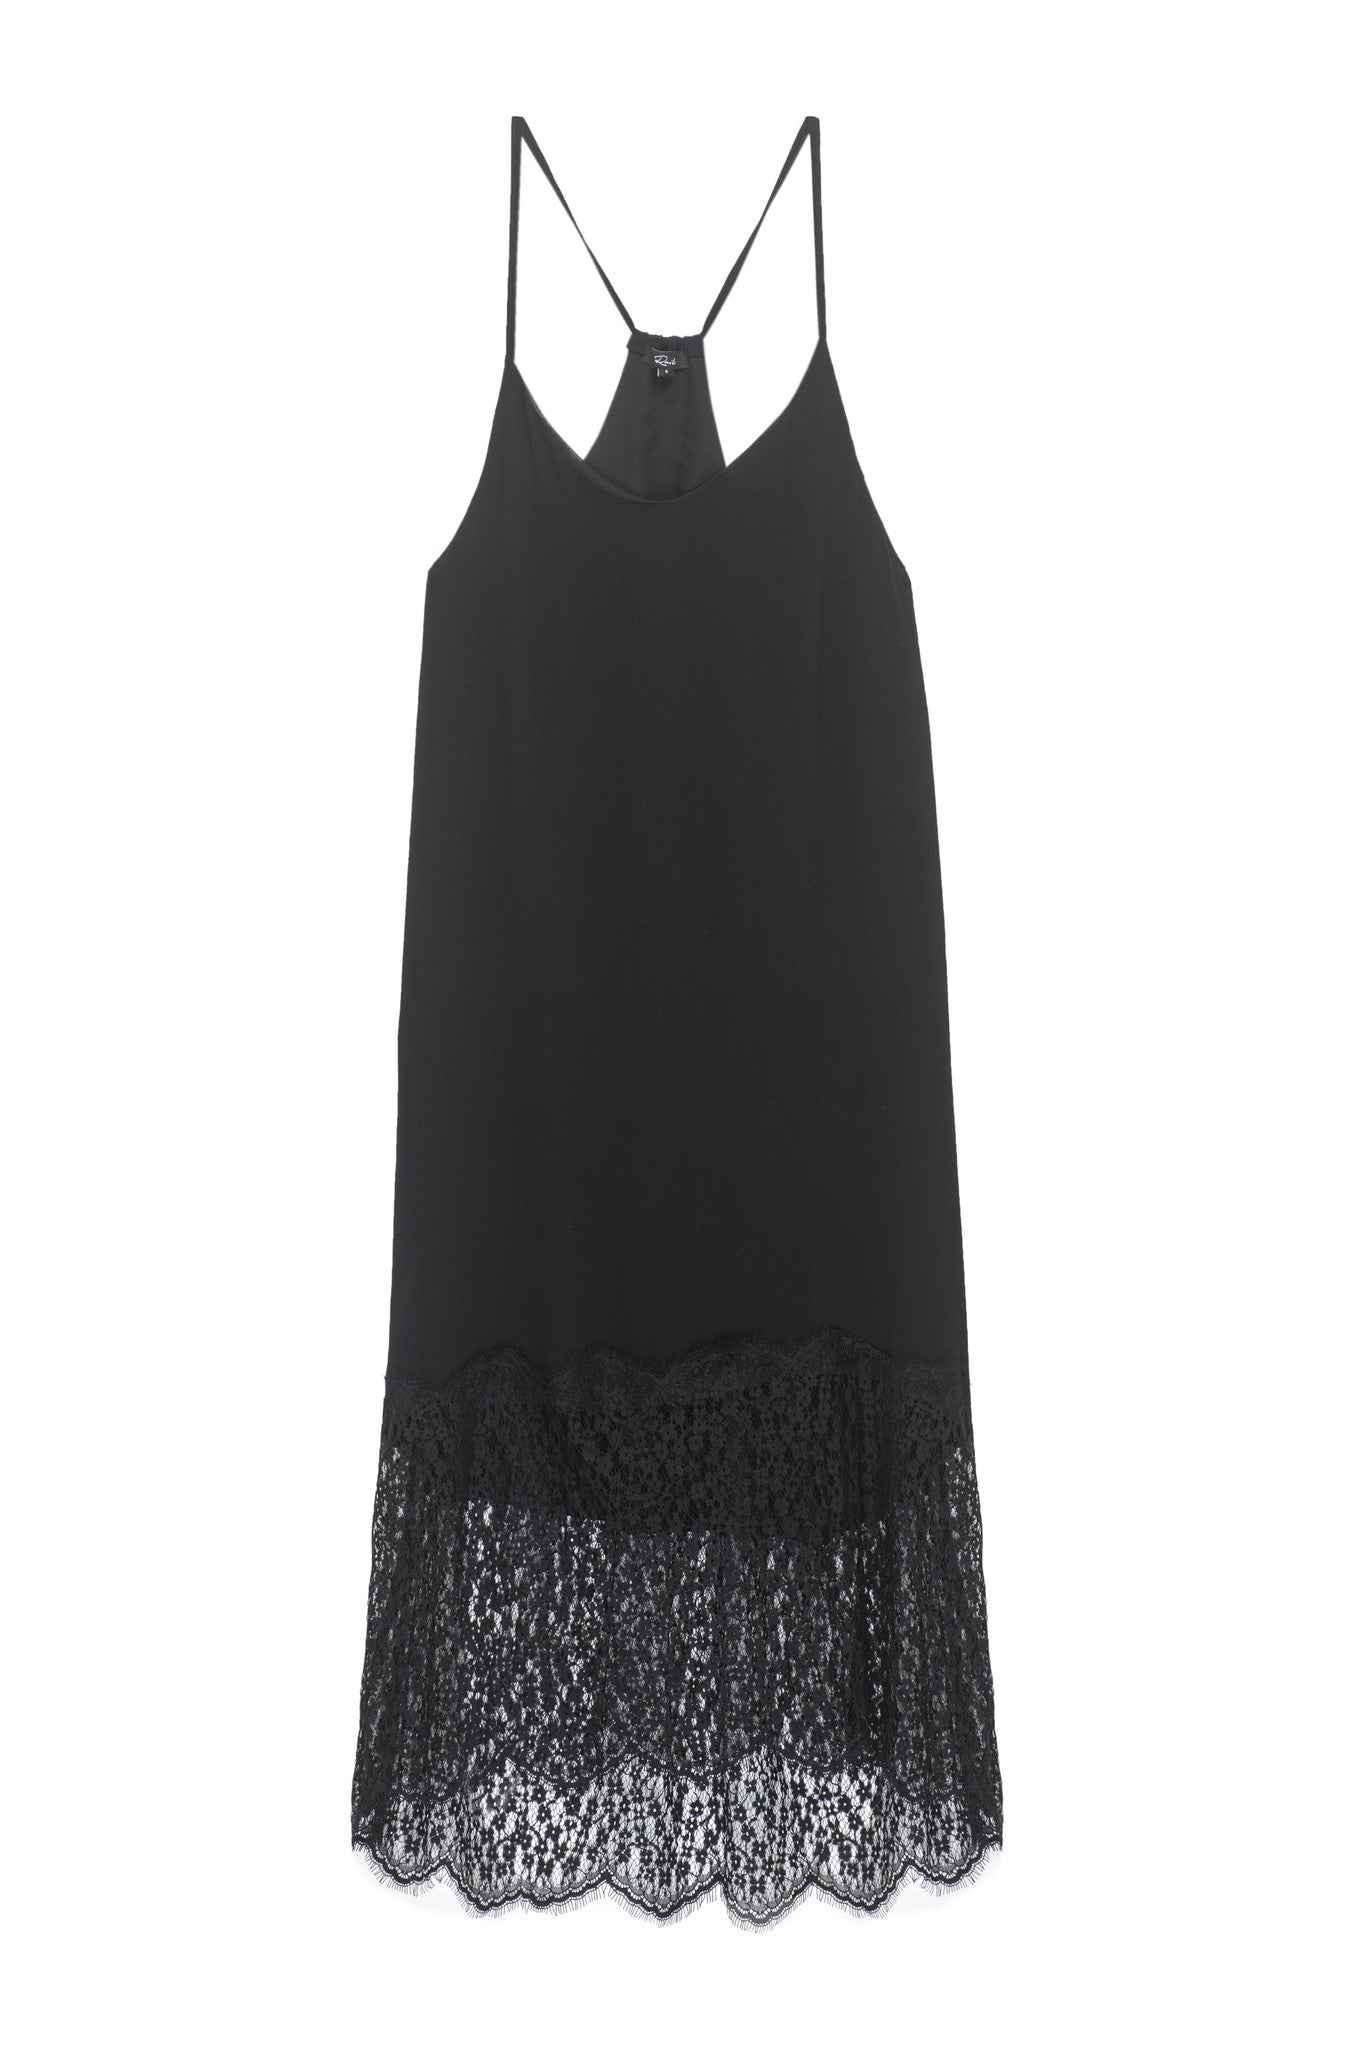 Sevilla - Black with Lace Trim